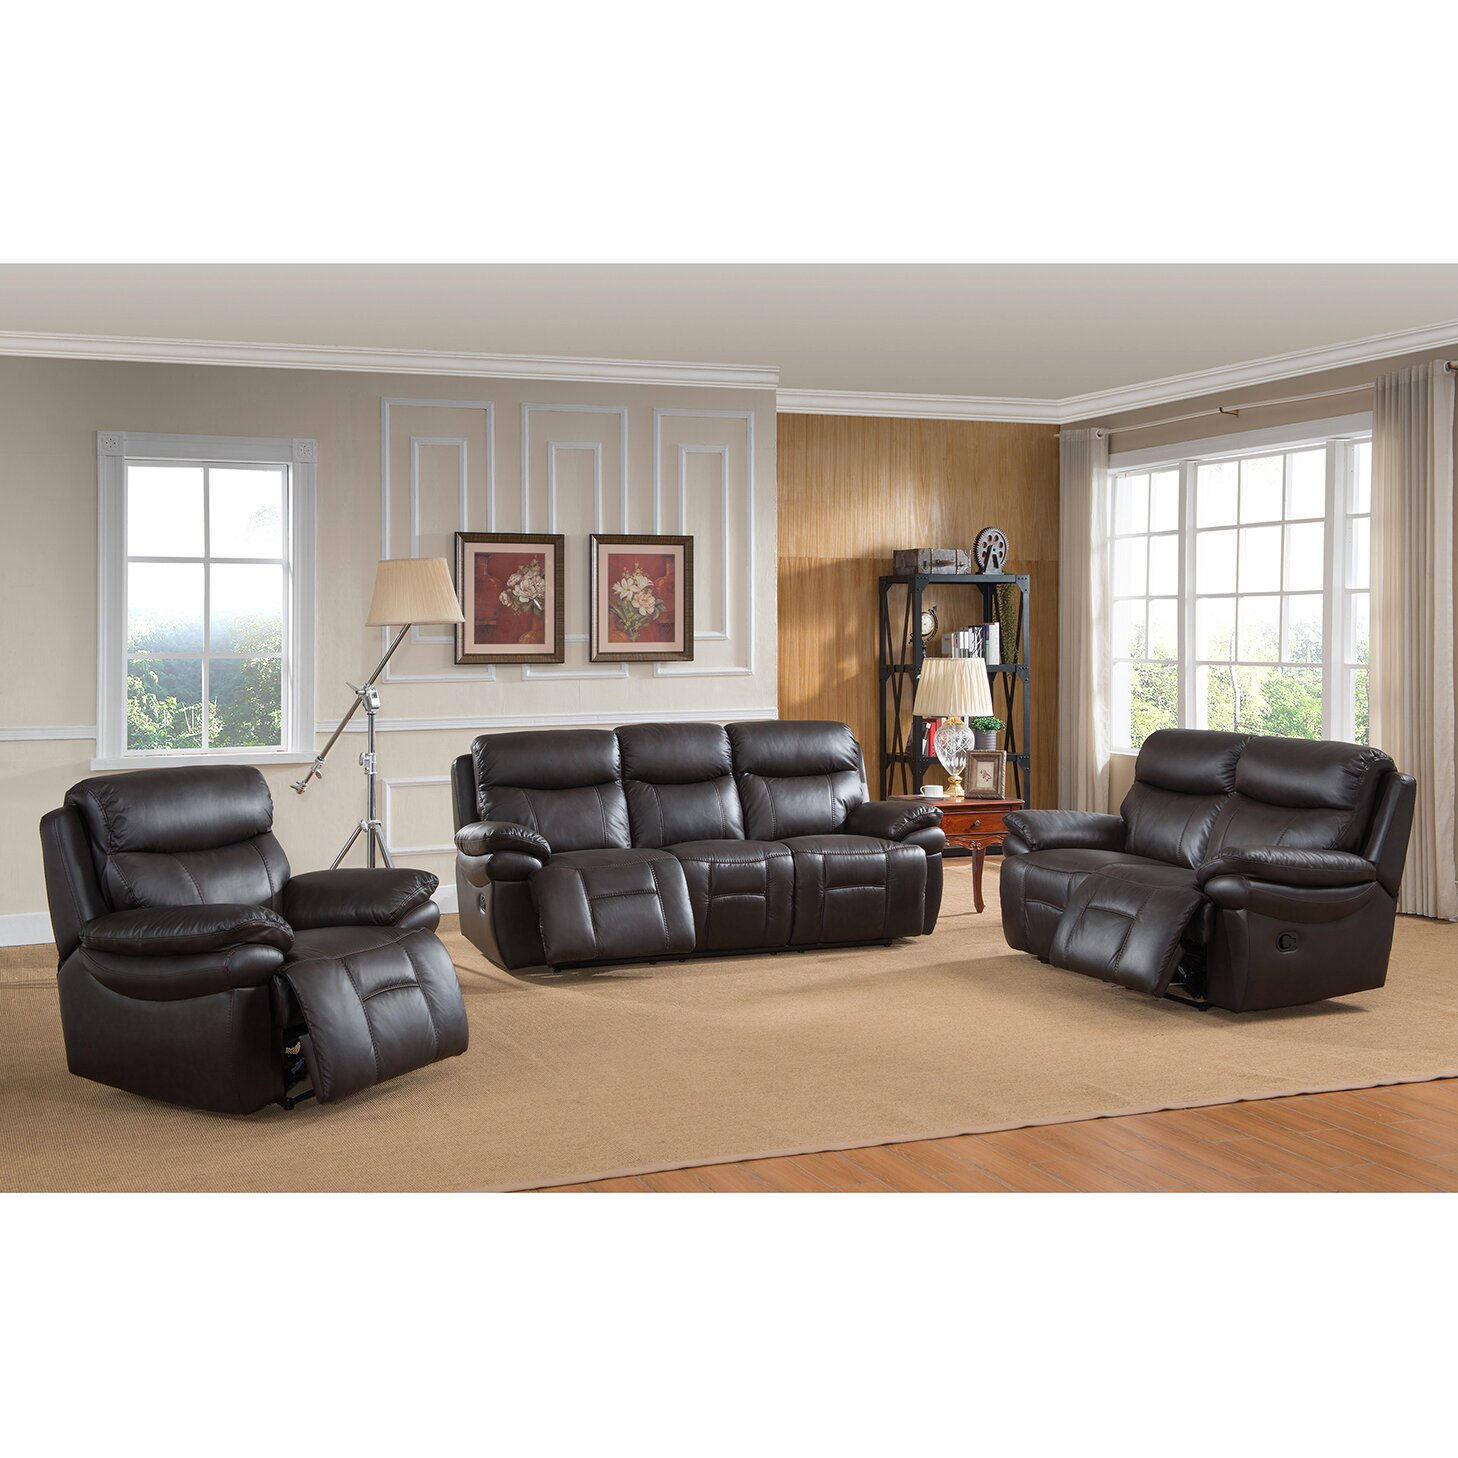 Amax rushmore 3 piece leather living room set reviews for 3 piece living room set